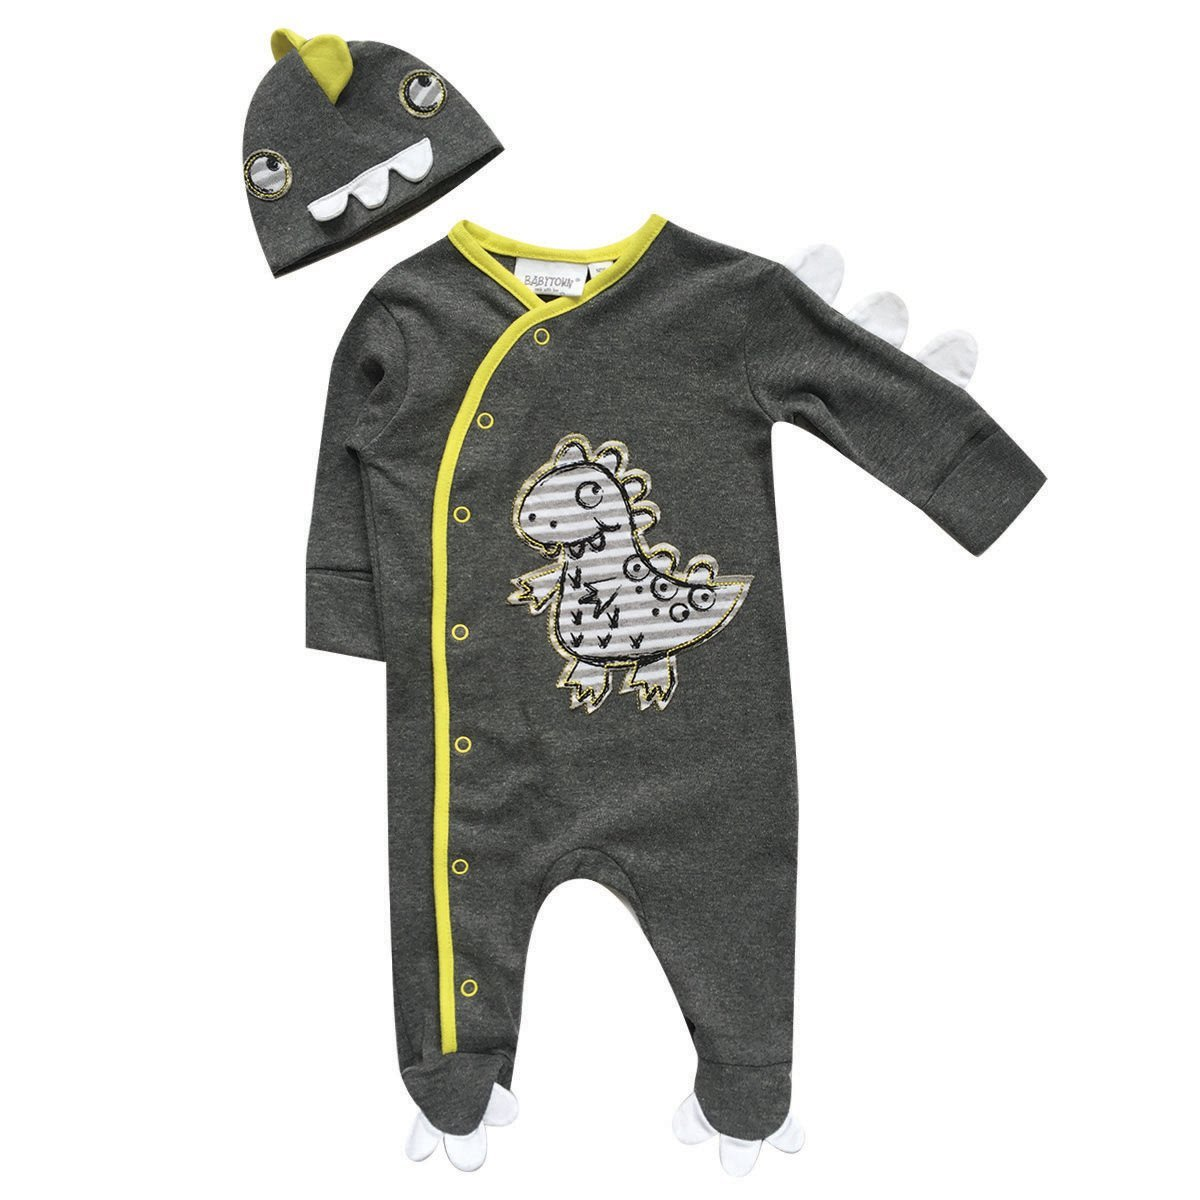 Baby Boys Dinosaur Themed Sleepsuit Set Babytown